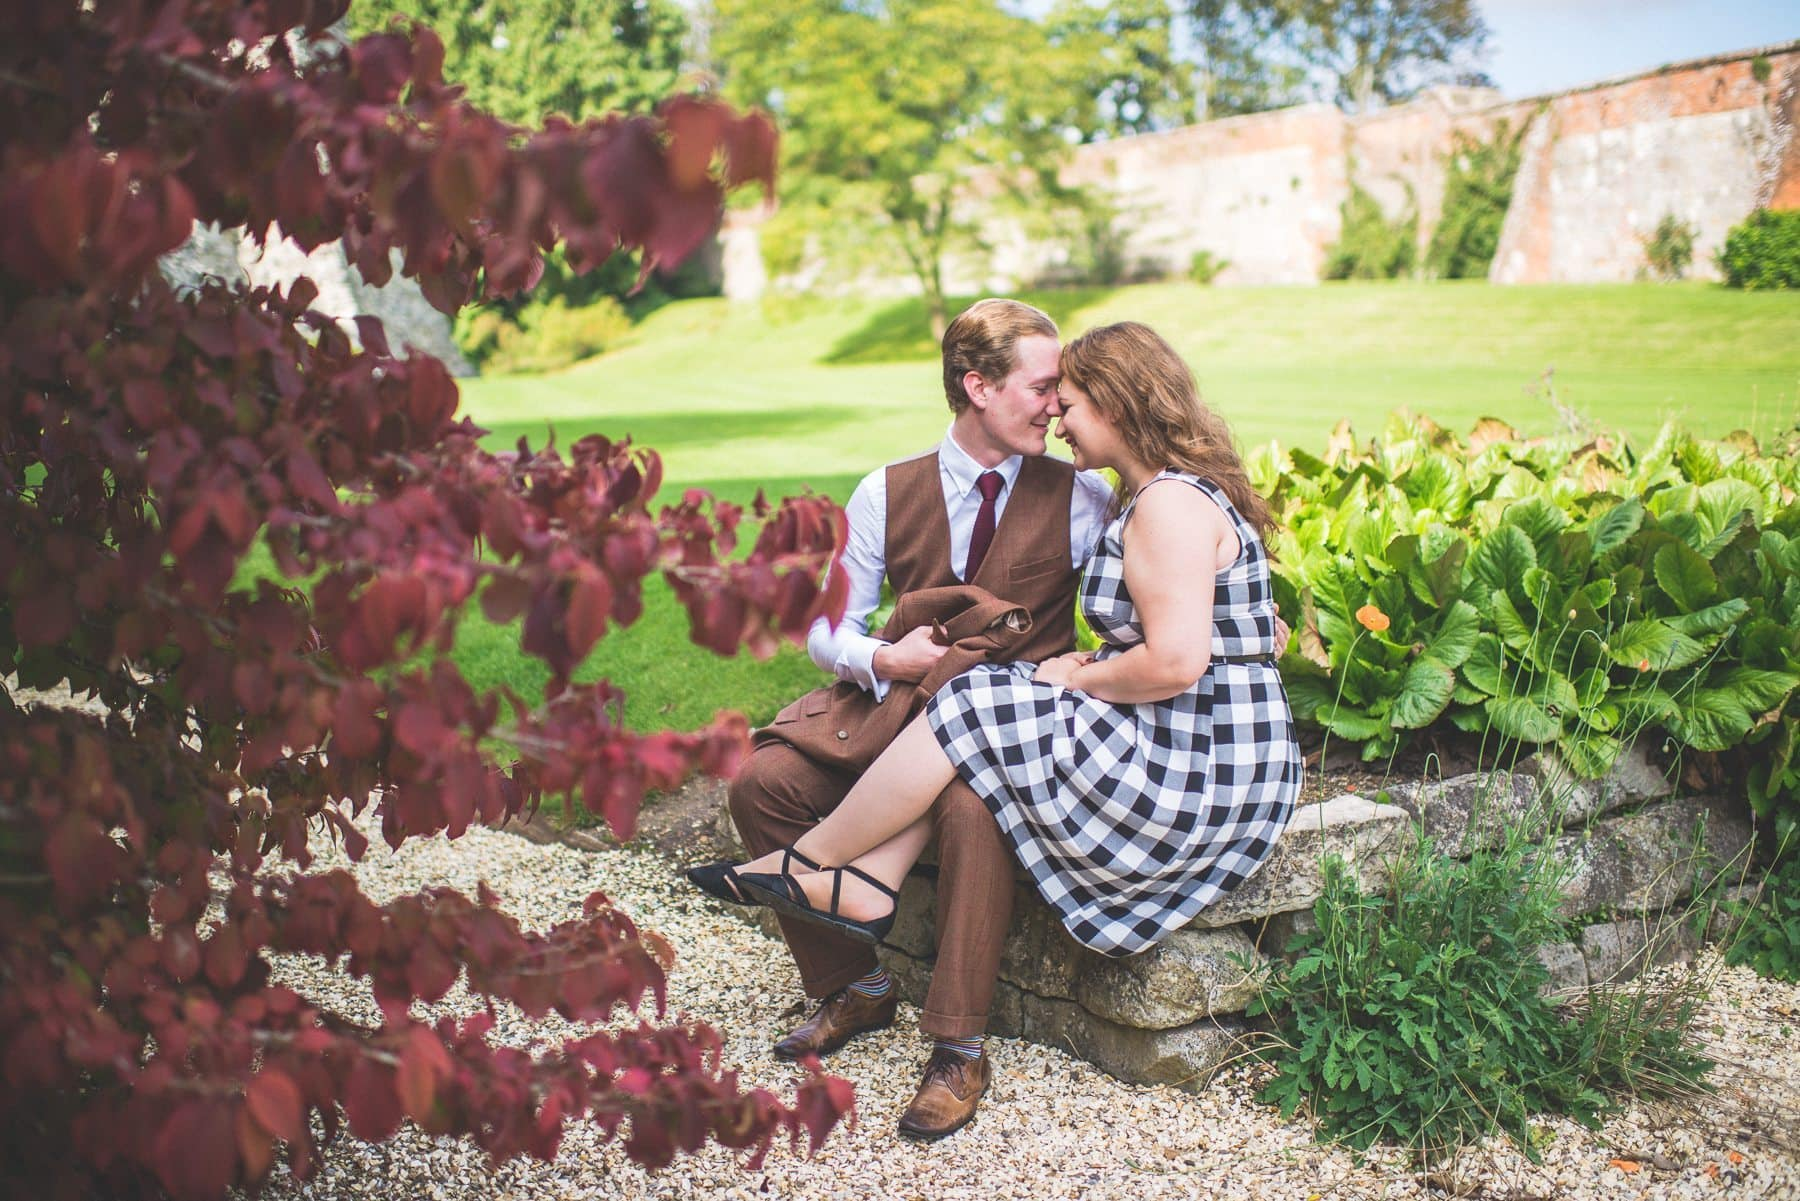 Tweed & Petticoats pre-wedding shoot at Farnham Castle by Maria Assia Photography